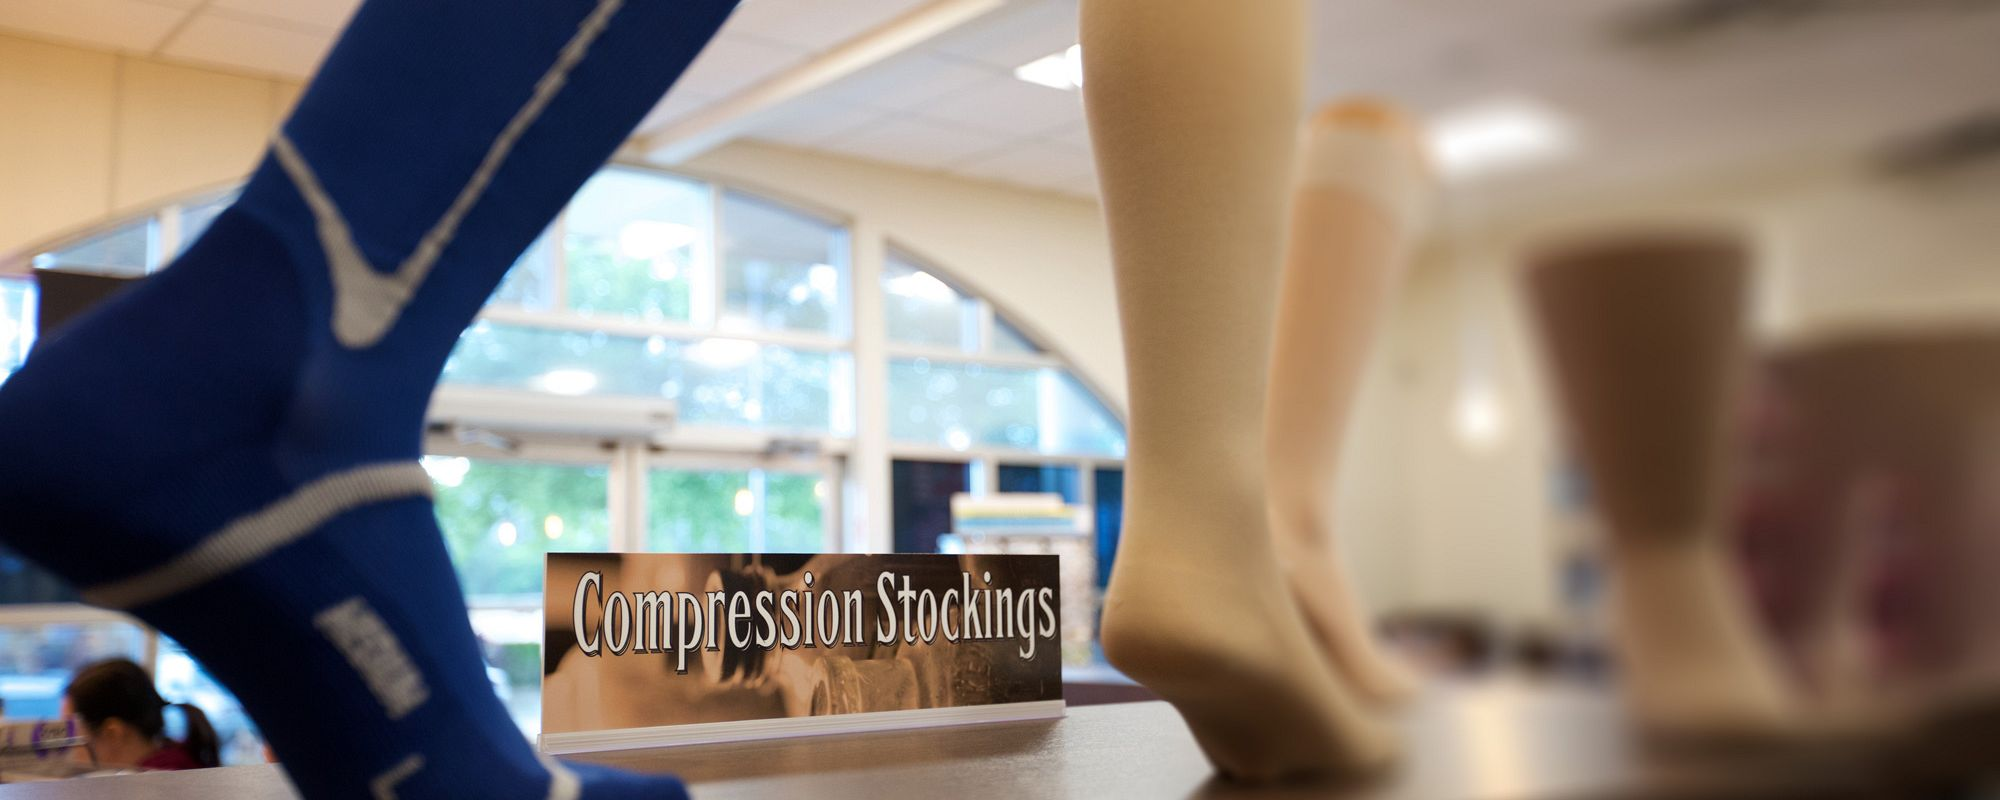 Compression Therapy image